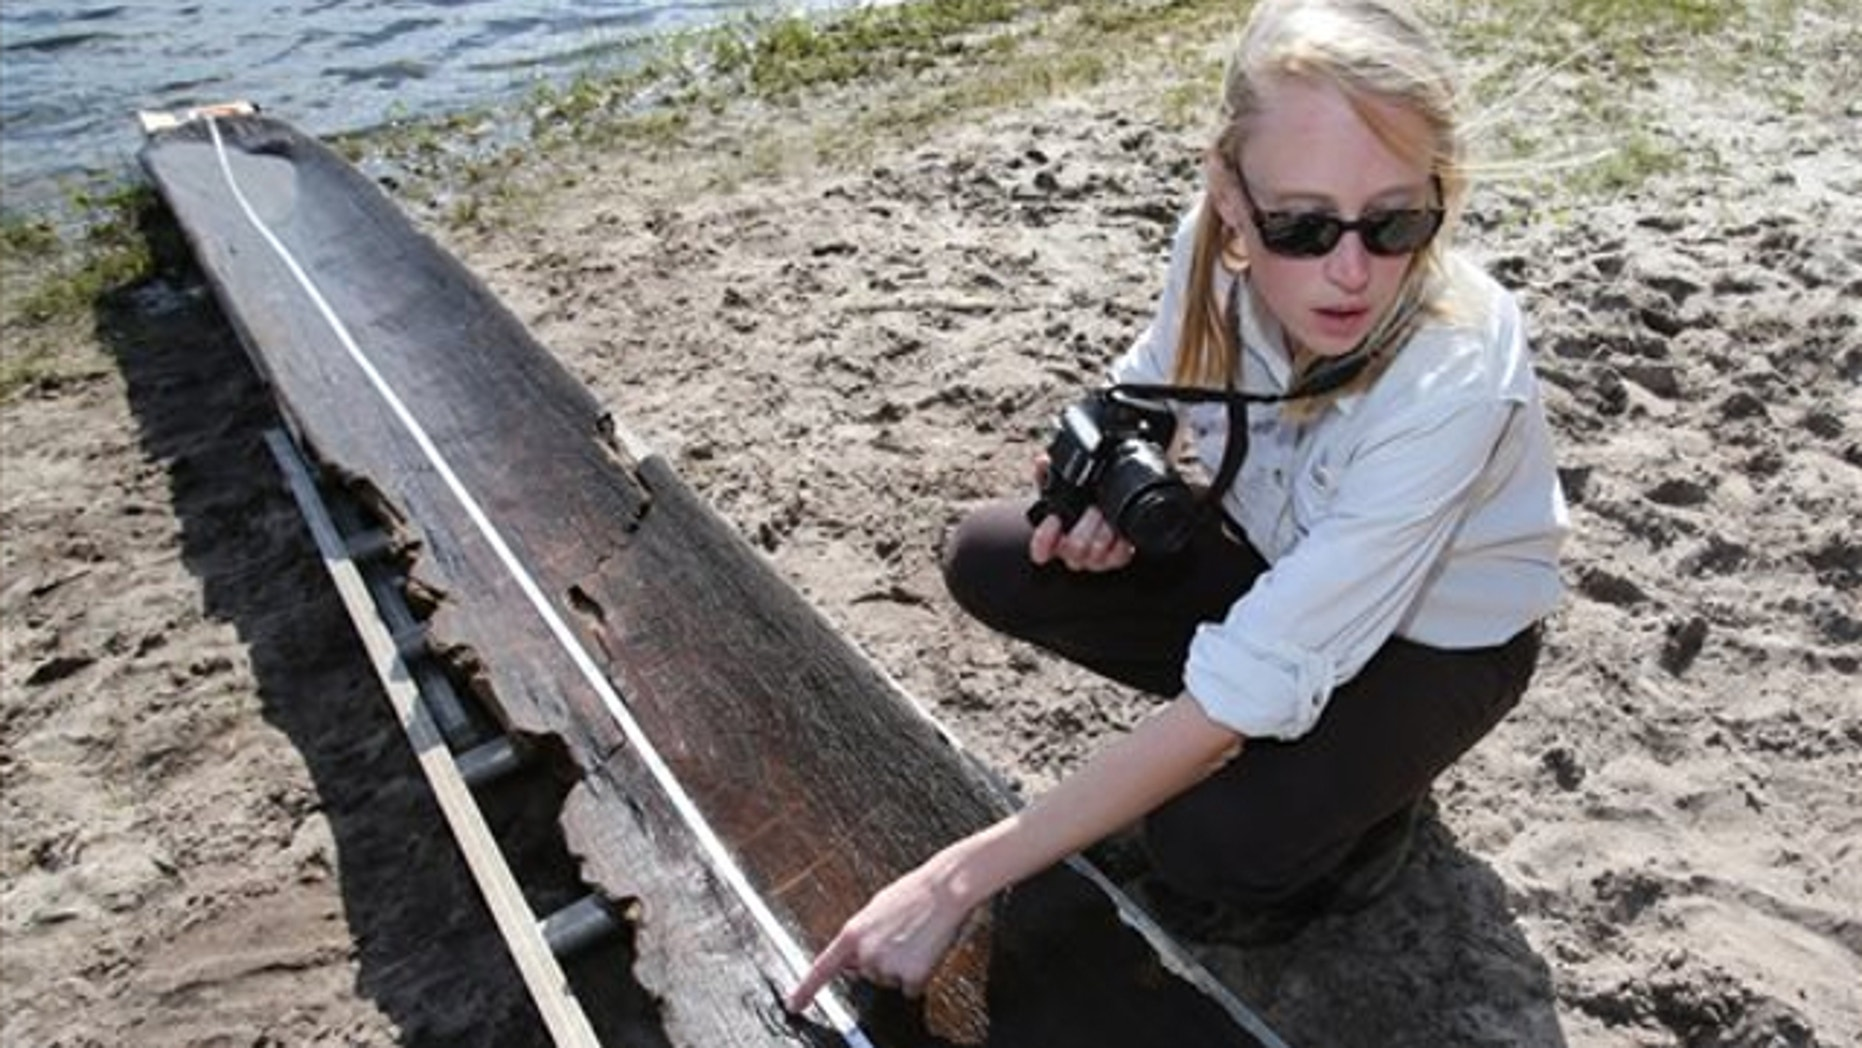 Sept. 19, 2013: Julia Byrd, a senior archaeologist with the Florida Bureau of Archaeological Research points out a burn mark on a dugout canoe found in Owen Lake in the Ocala National Forest east of Ocala, Fla.